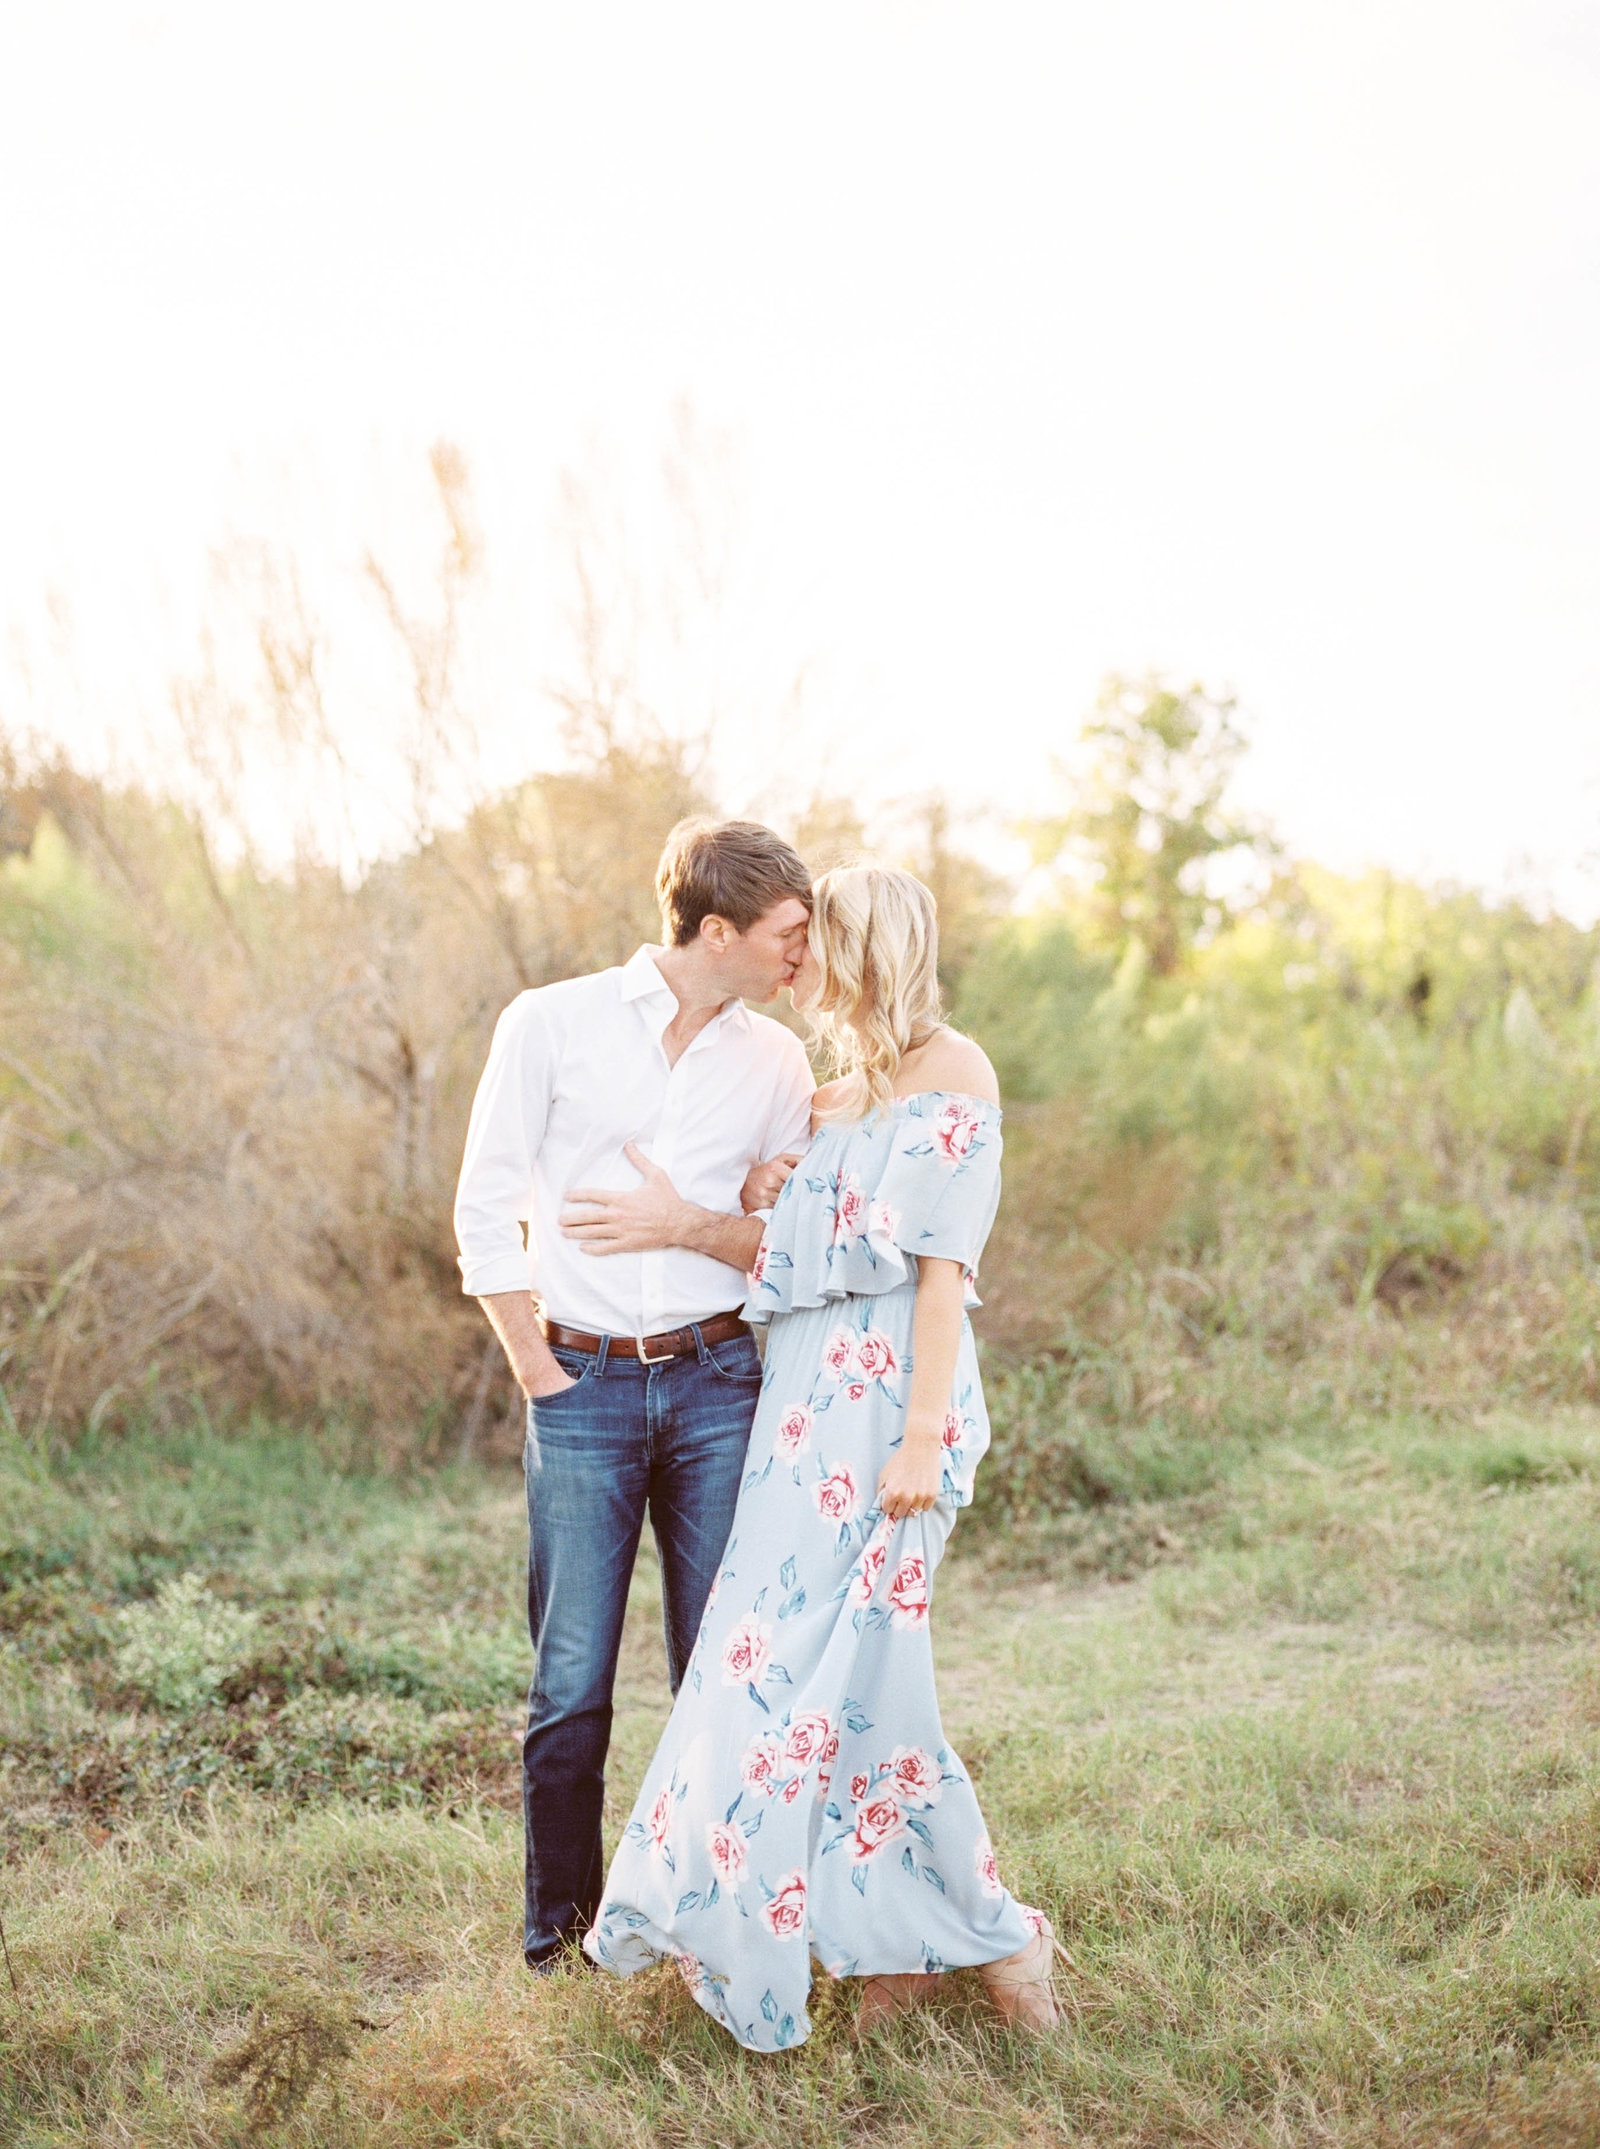 Dallas engagement photographer_Chelsea Q White-56